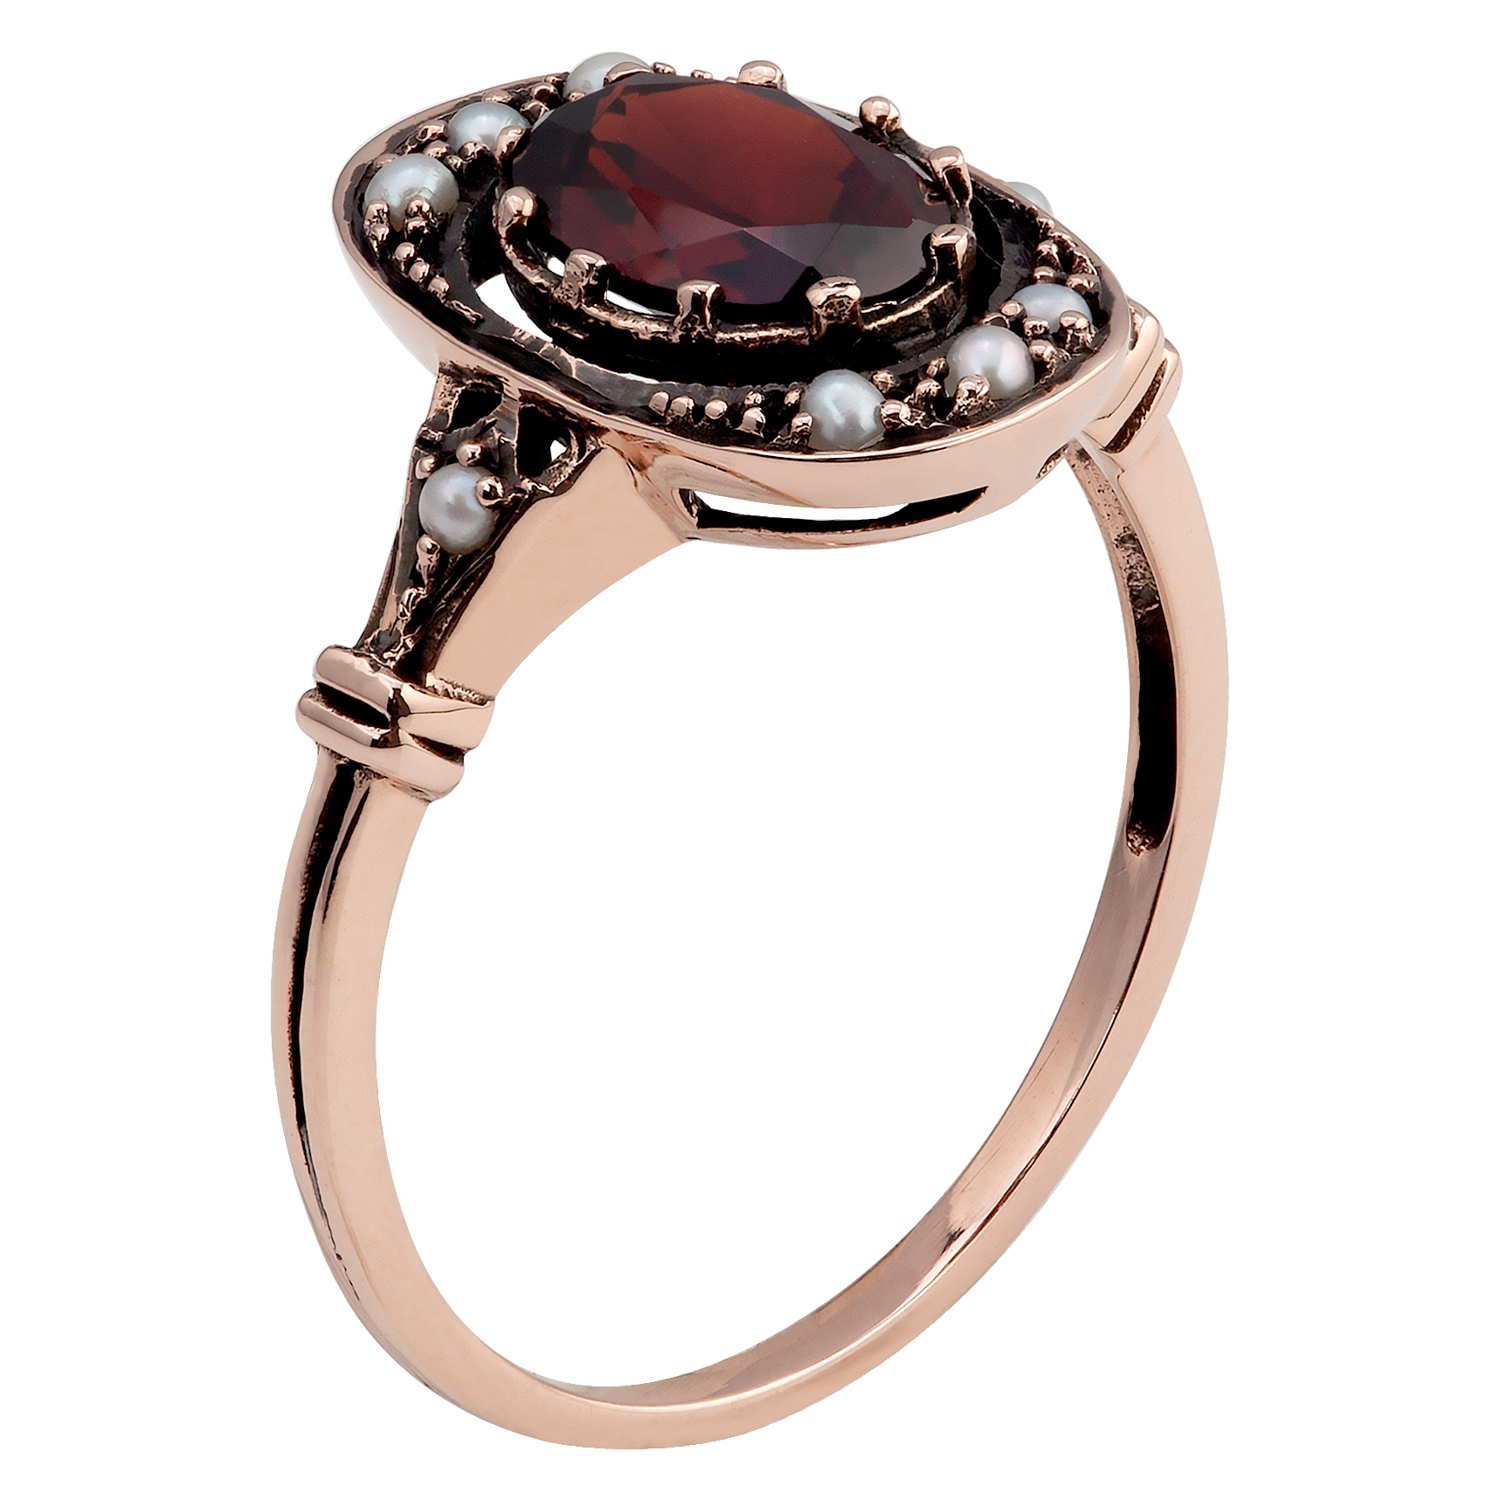 10k rose gold vintage style genuine garnet and pearl ring ebay. Black Bedroom Furniture Sets. Home Design Ideas